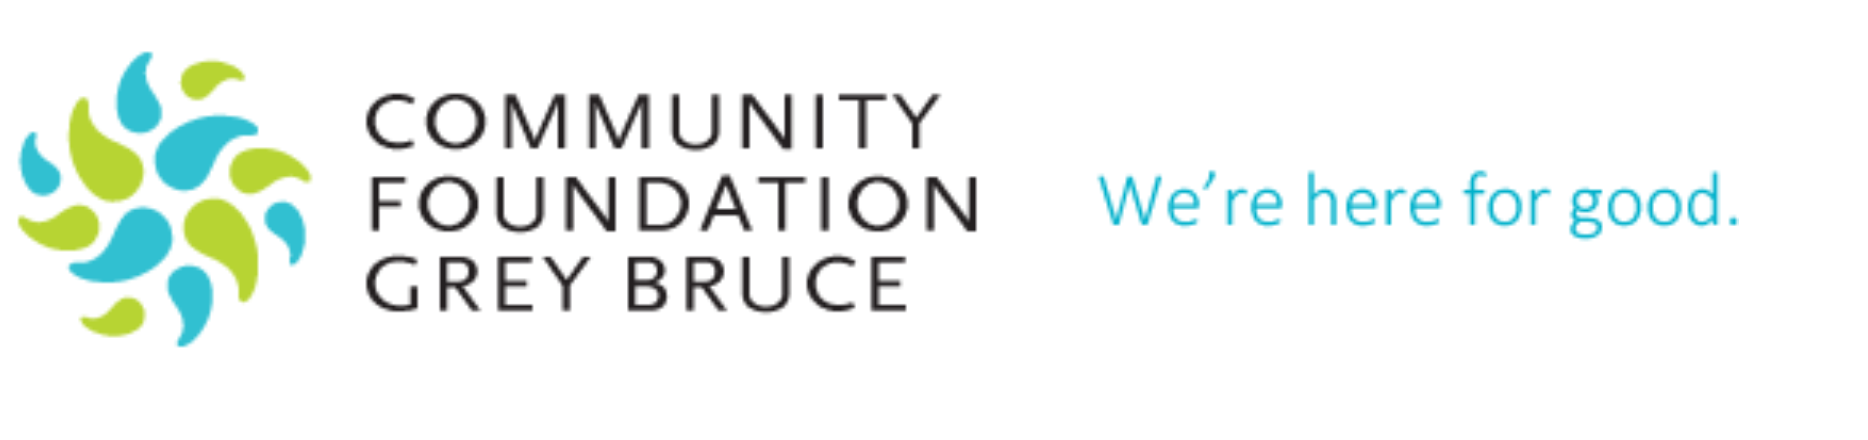 Community Foundation Grey Bruce Logo